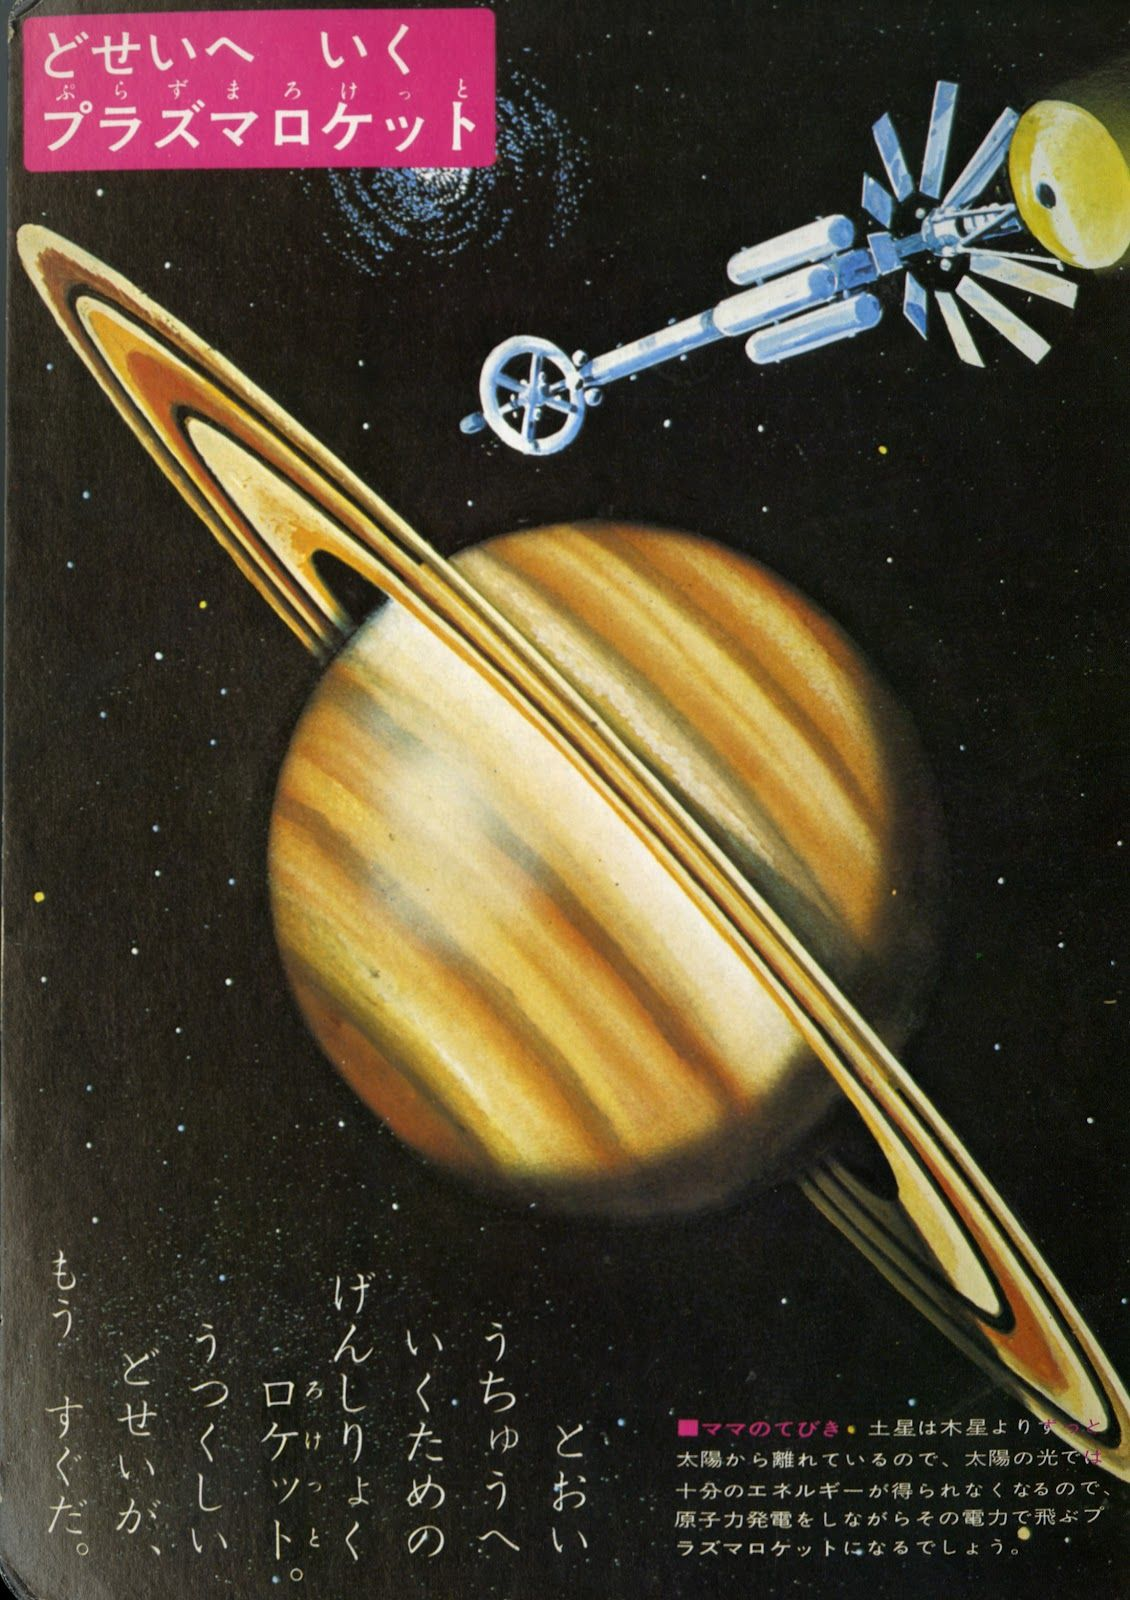 Dreams of Space - Books and Ephemera: Uchu-u Ryoko (travel/trip in the universe) (1971?) Part 2